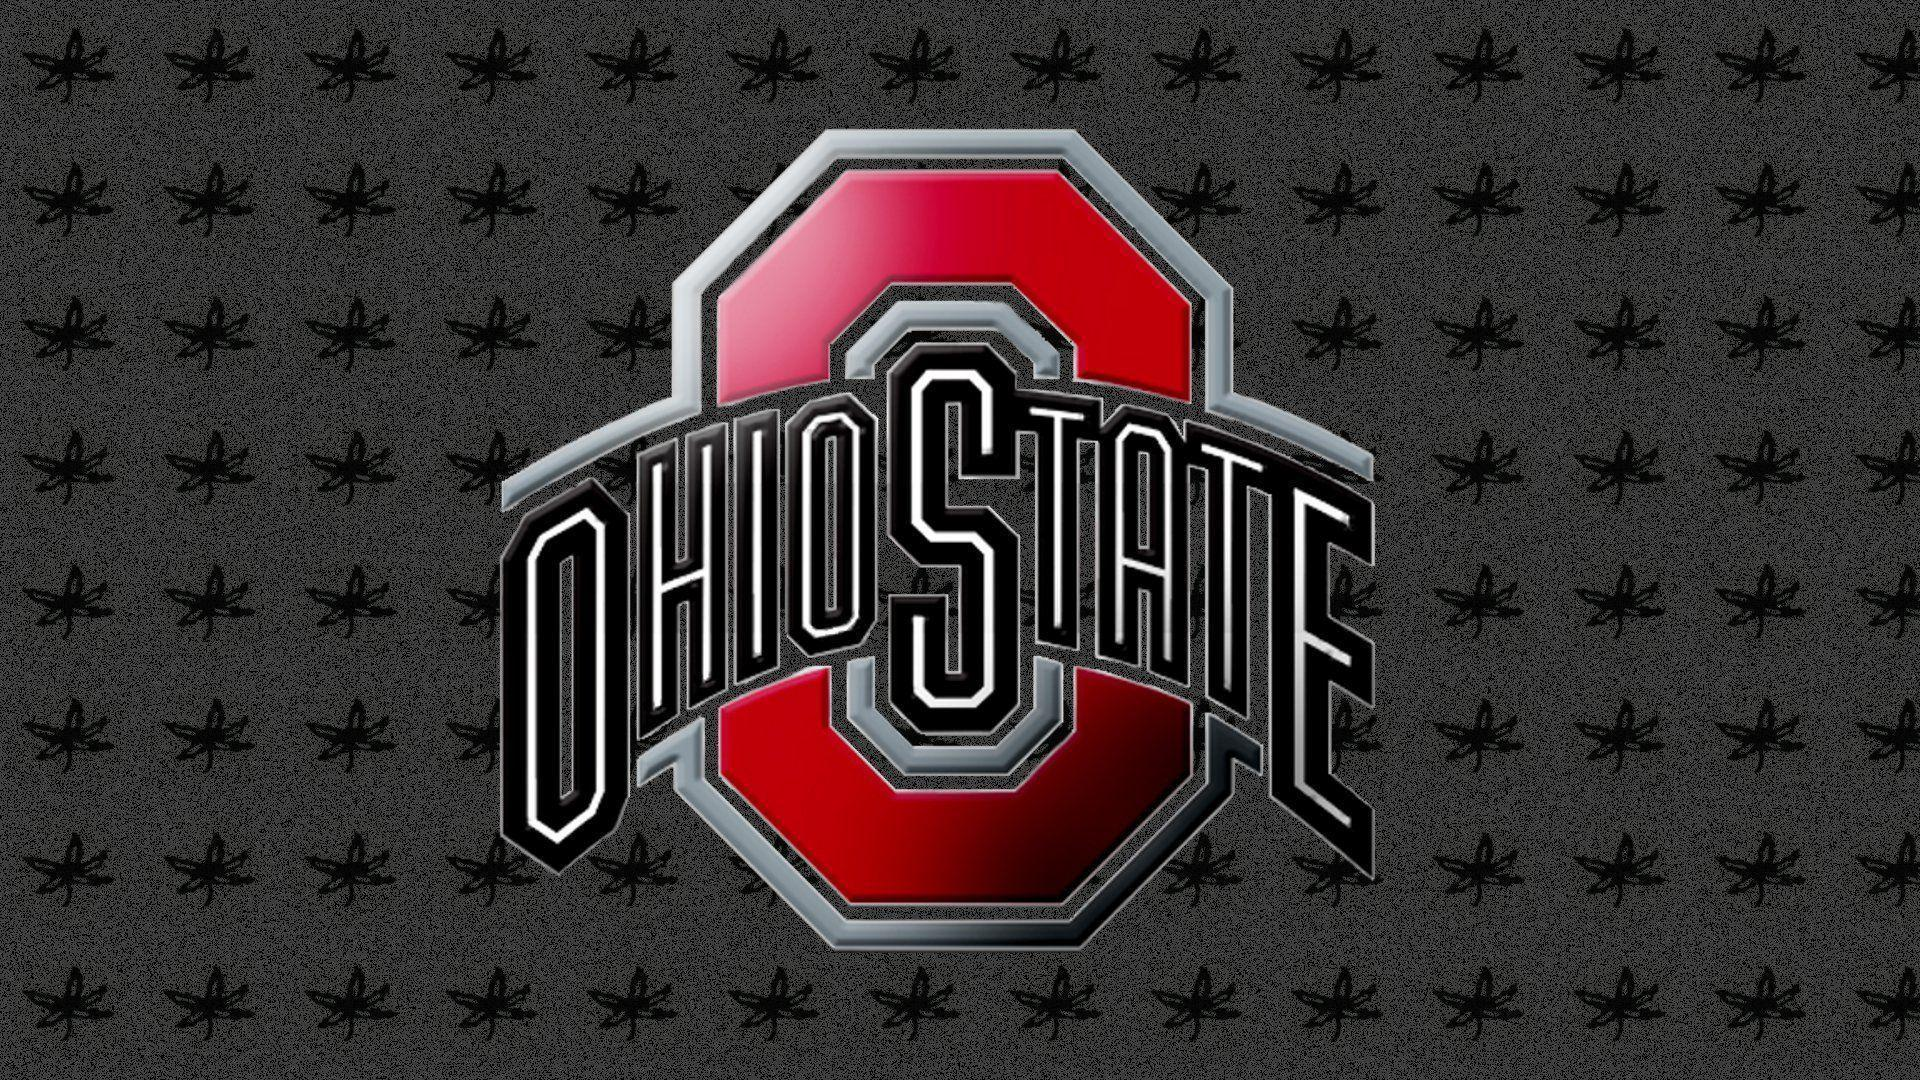 OSU Desktop Wallpaper 55 - Ohio State Football Wallpaper (28971119 .